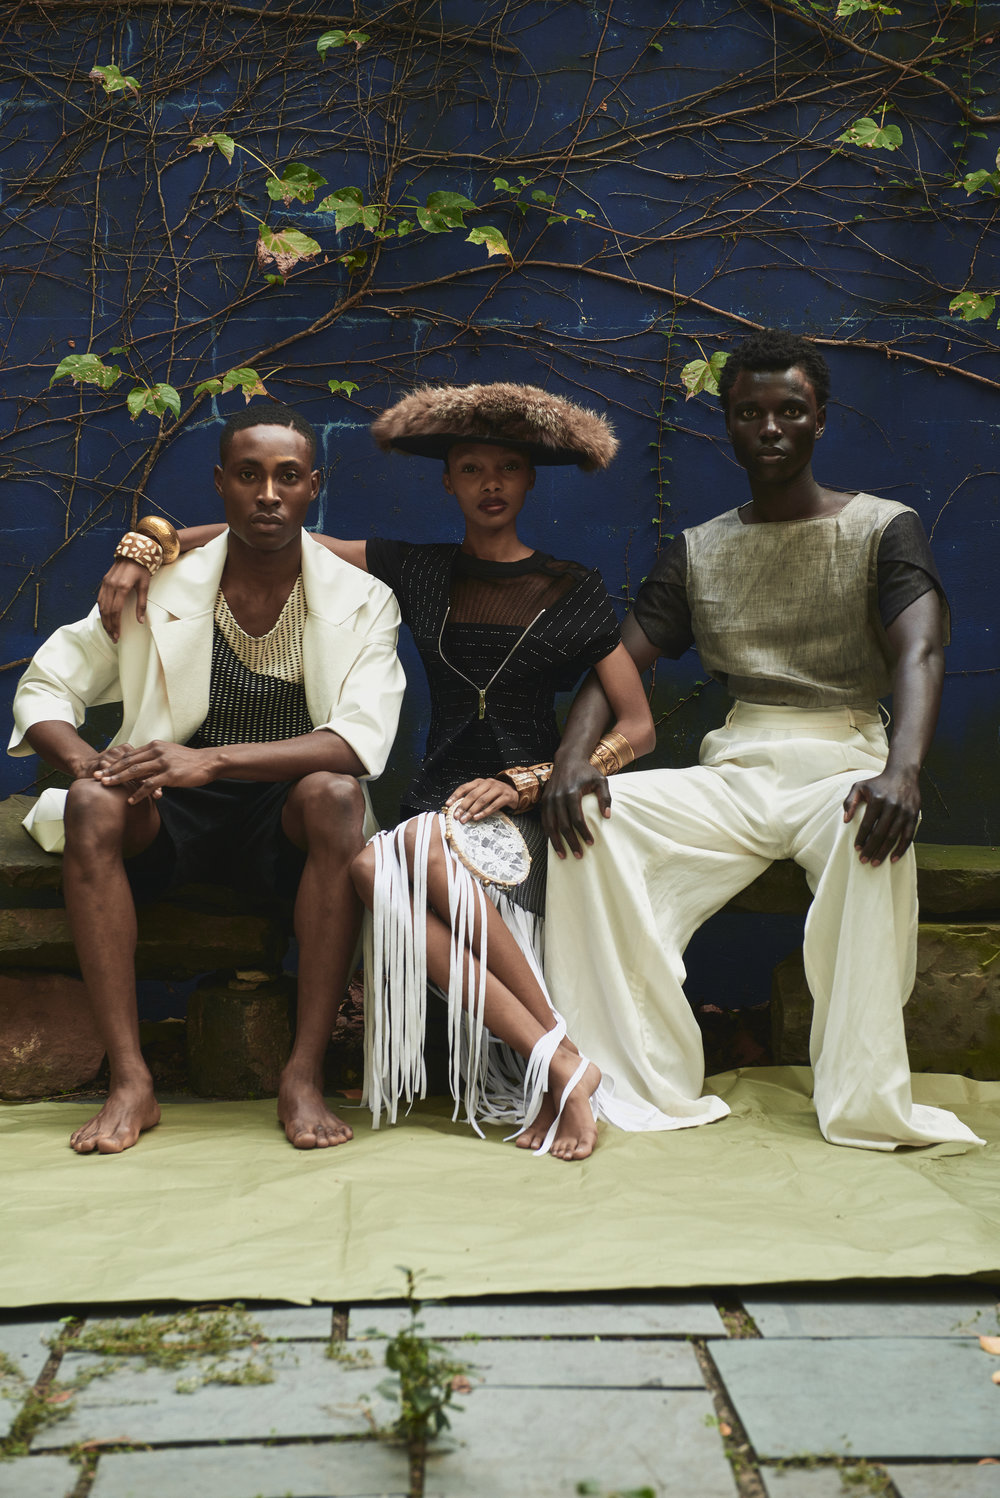 Photography: Timothy Smith - Styling: Paix Robinson - Hair/Makeup: Jake Aebly - Models: Jide Alao Yanii Gough & George Afrekh